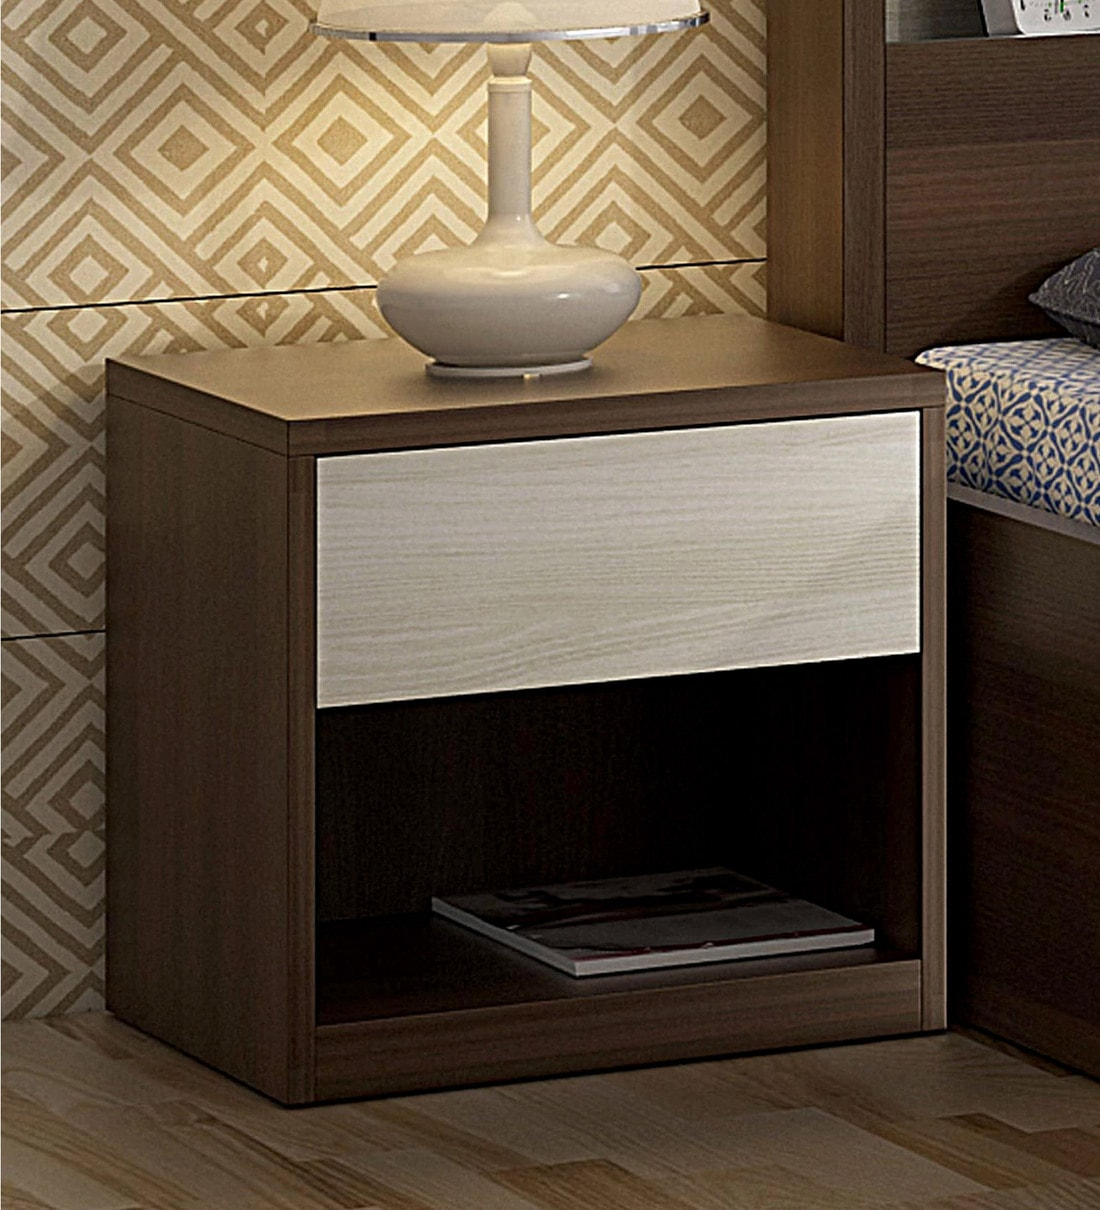 Buy Kosmo Ambry Bed Side Table In Moldau Acacia Brown And White Finish By Spacewood Online Modern Night Stands Tables Furniture Pepperfry Product